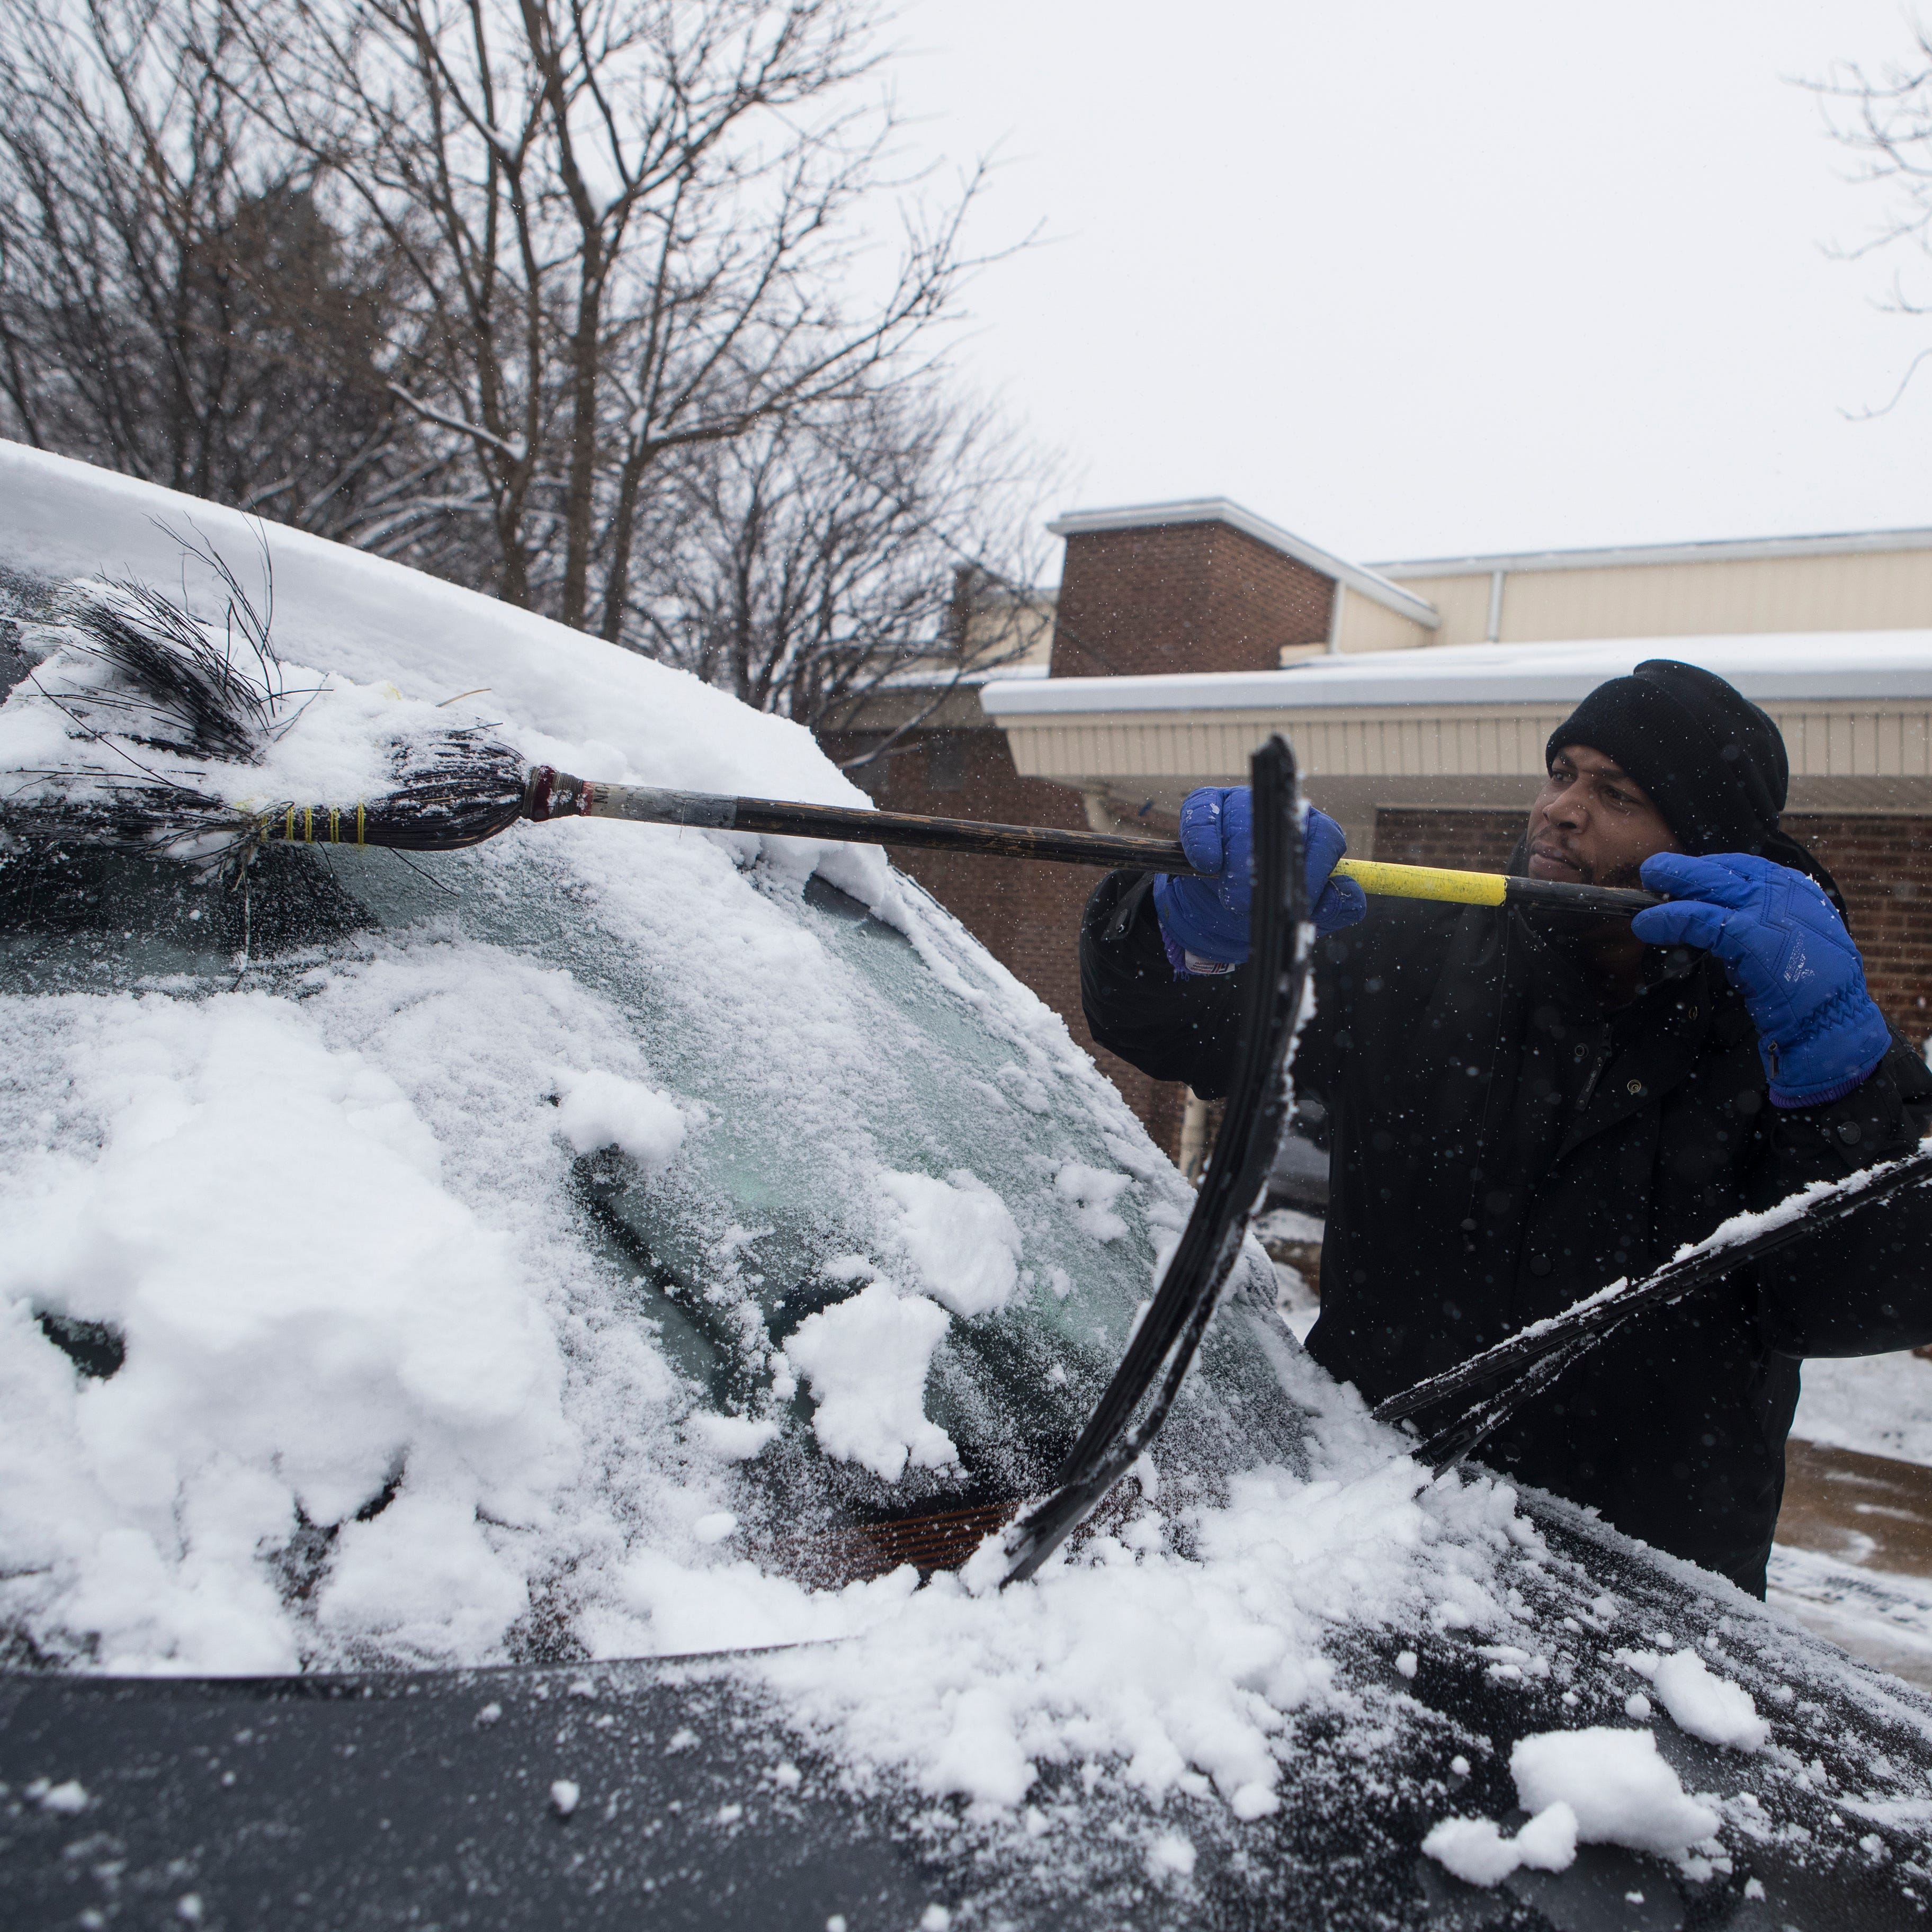 Will Delawareans finally get fined for driving around with snow on their cars?